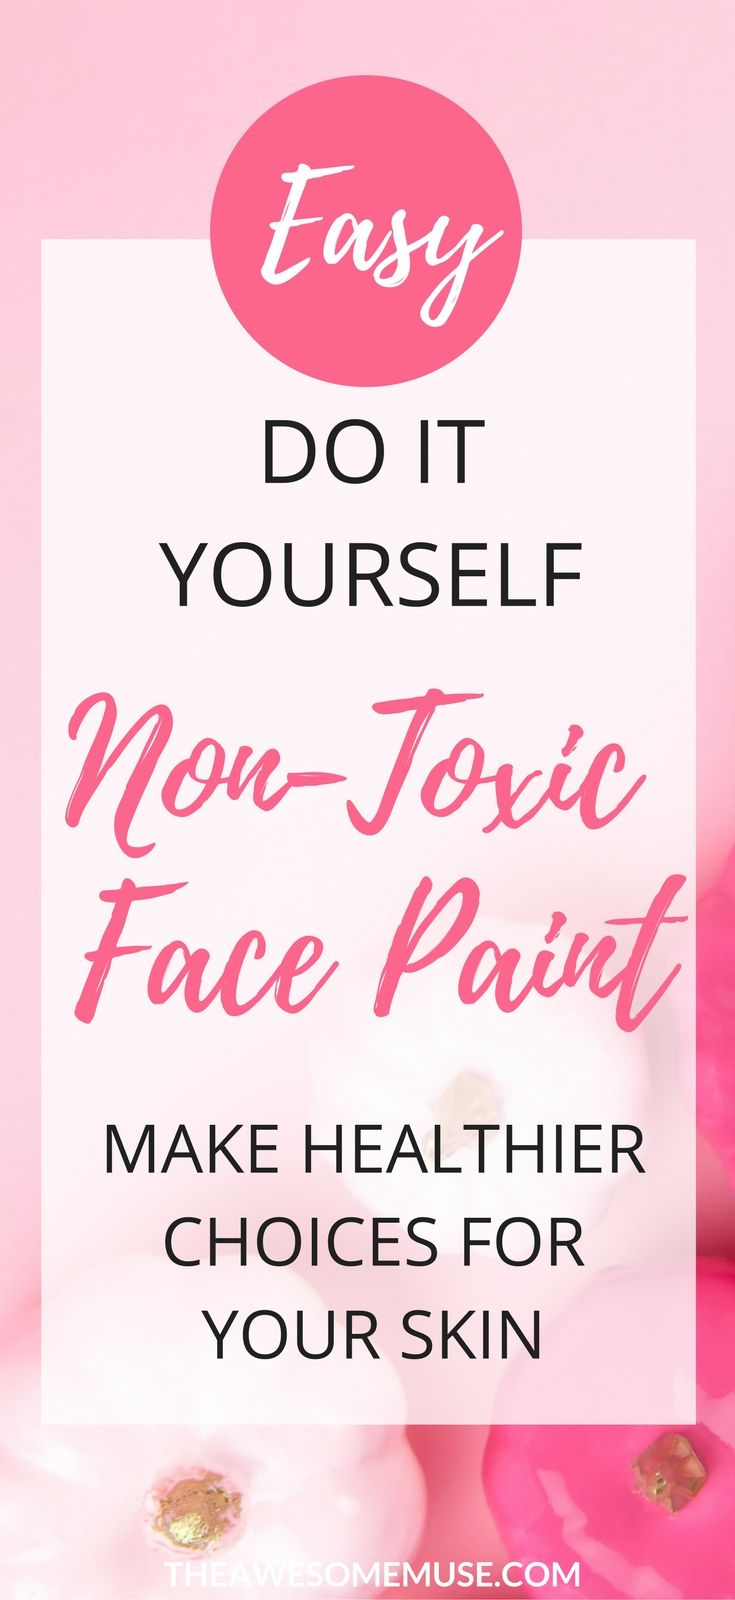 Do it yourself halloween face paint facepaint ideas face and do it yourself halloween face paint facepaint ideas face and weight loss solutioingenieria Image collections